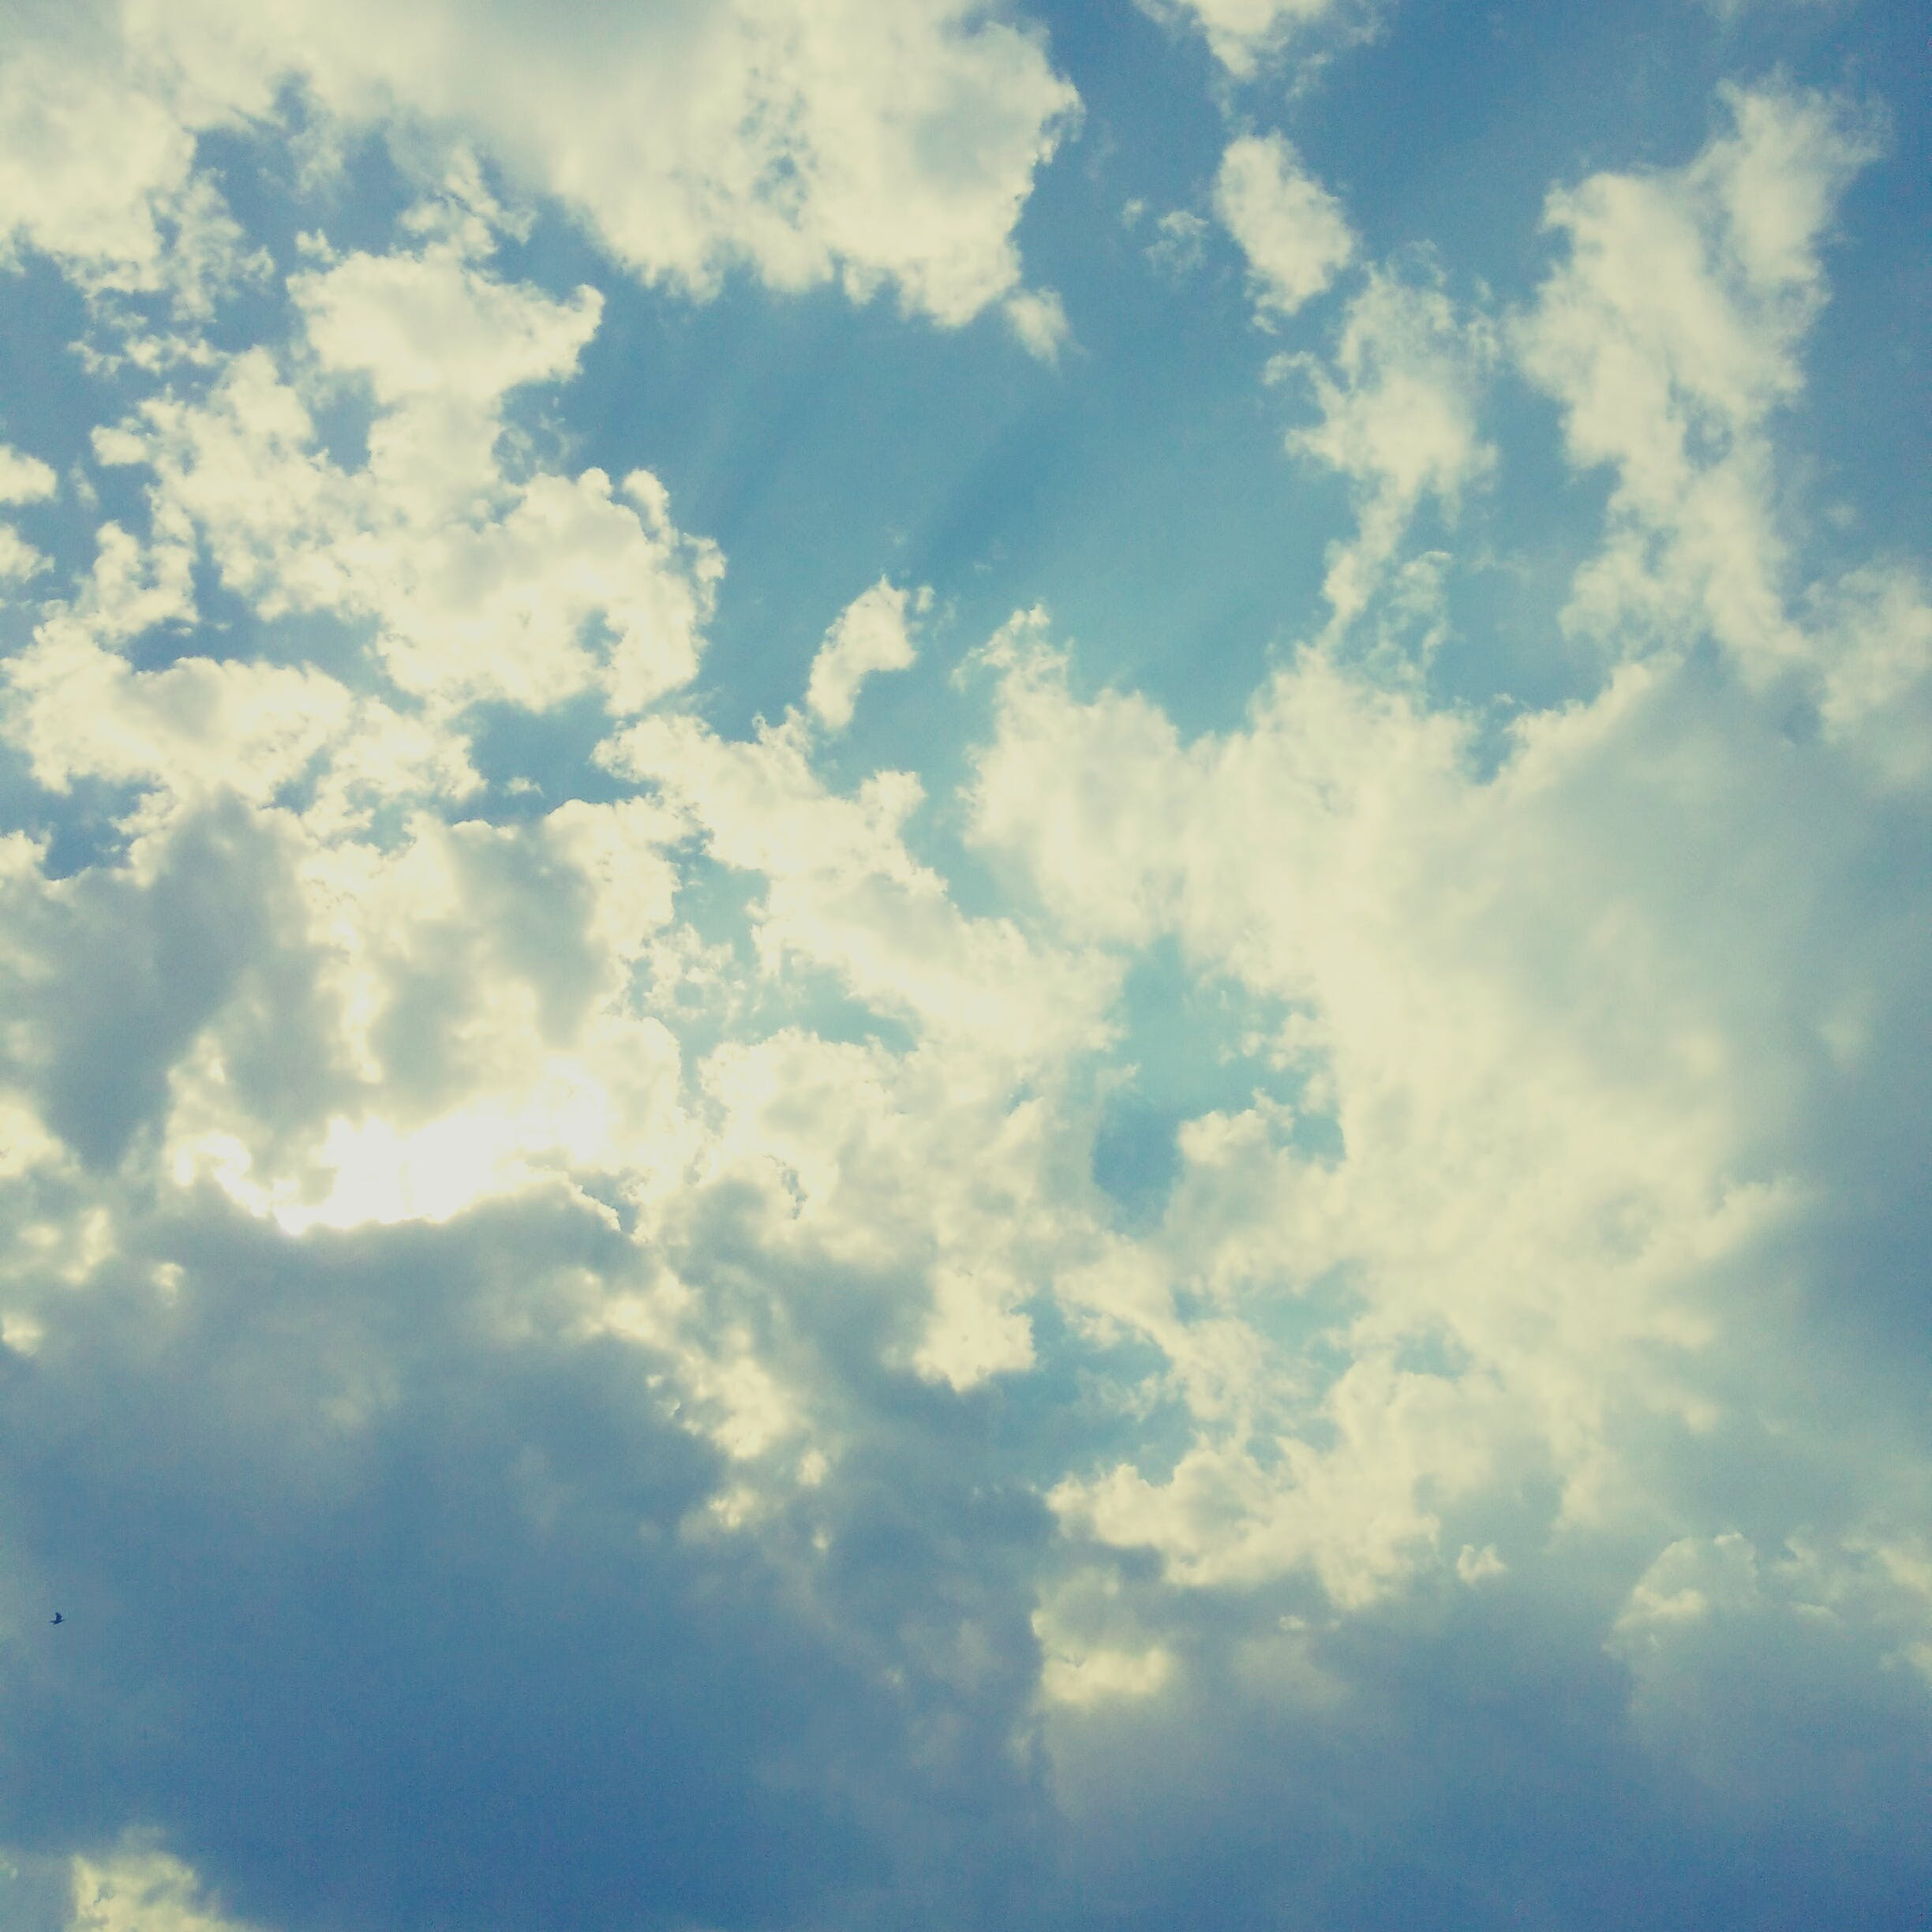 Free stock photo of blue sky, clouds, sun